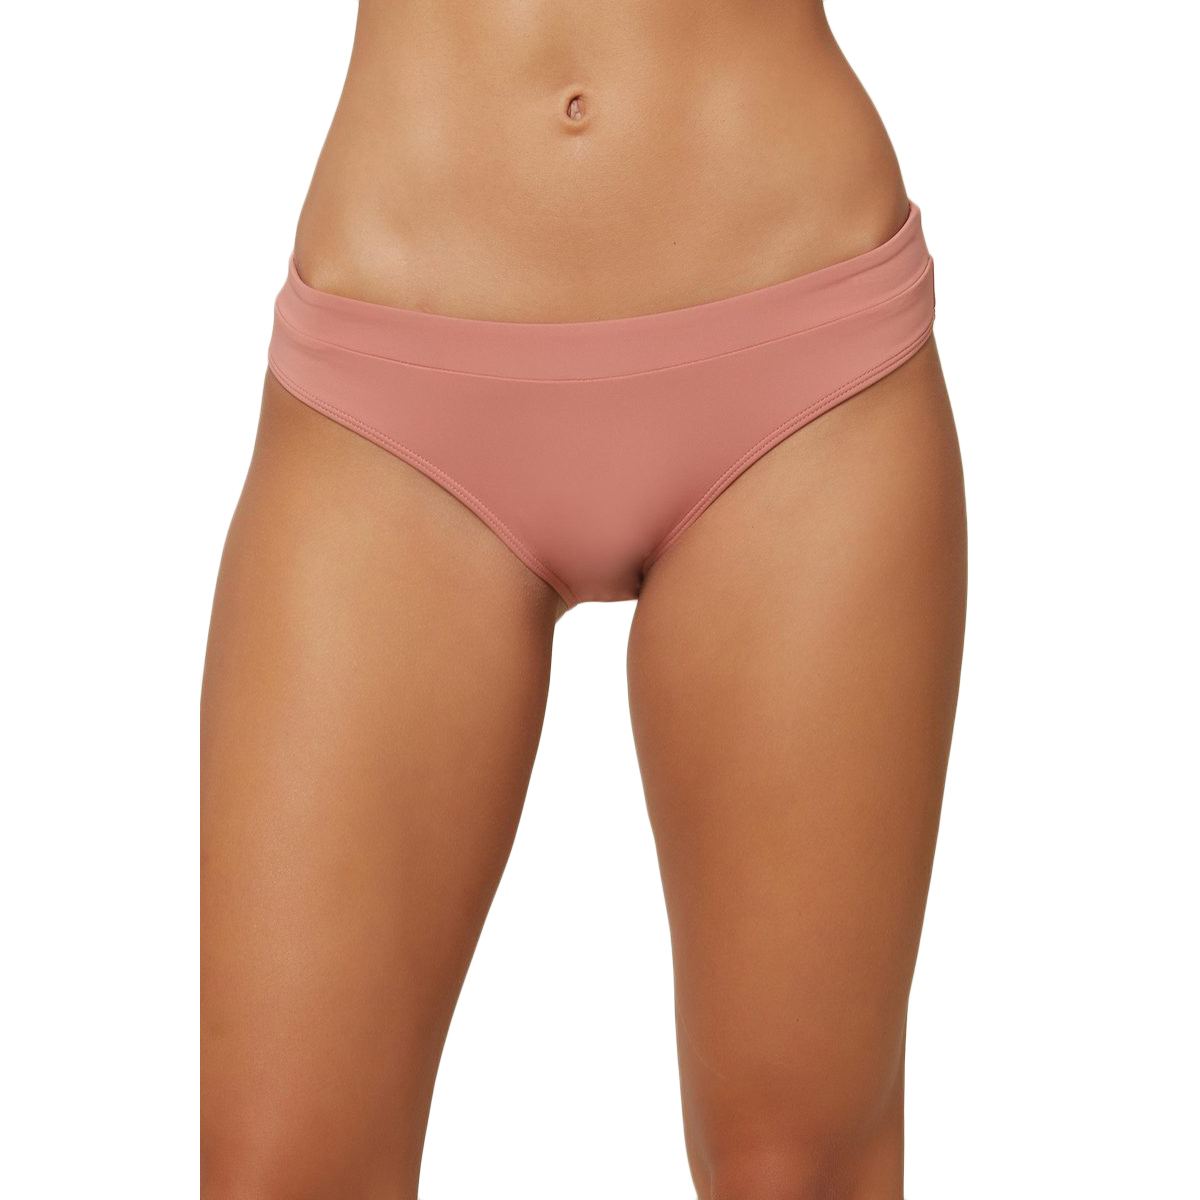 O'neill Juniors' Salt Water Swim Bottoms - Red, XS